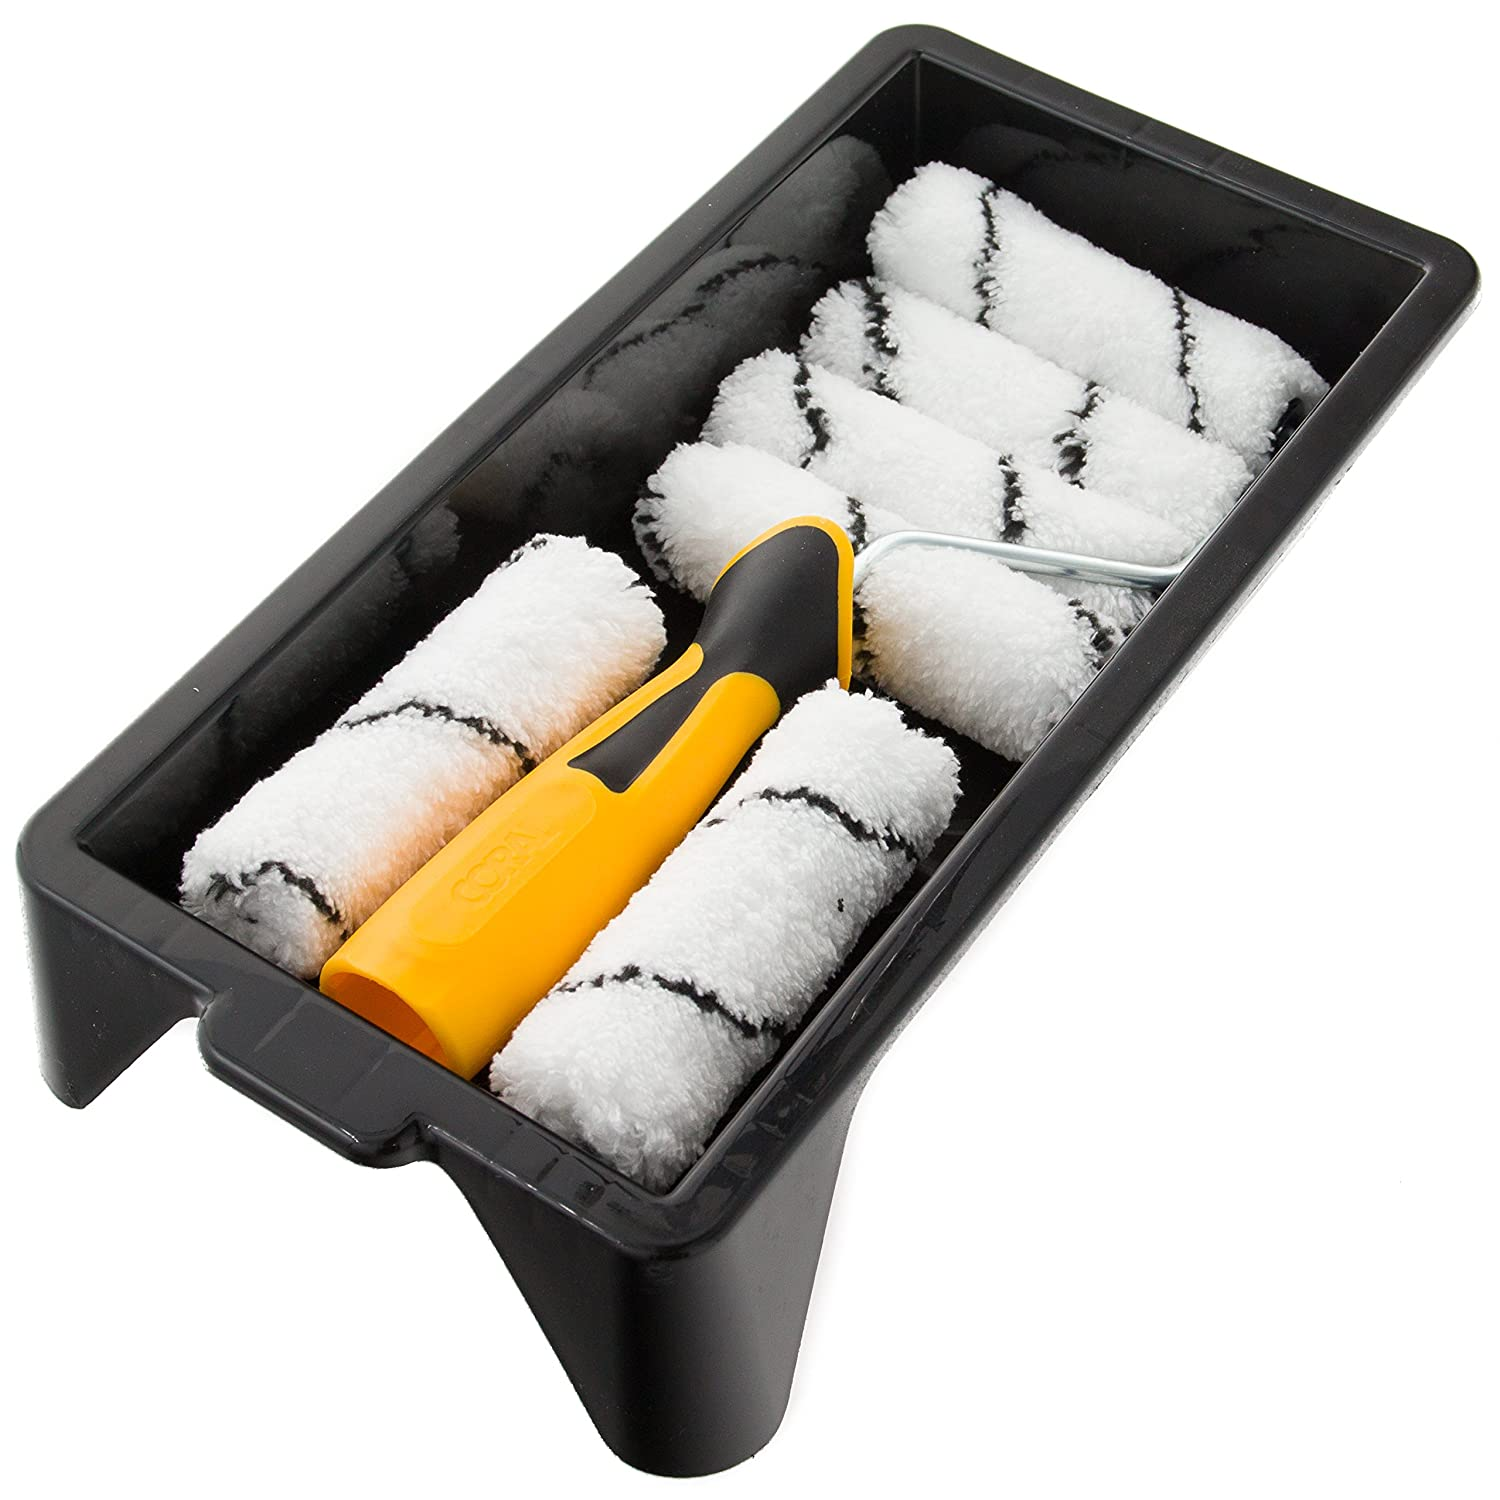 Coral 43400 Easy Coater Paint Mini Roller Kit with Microfibre Covers for Emulsion 4 inch 8 Piece Pack Set Coral Tools Ltd